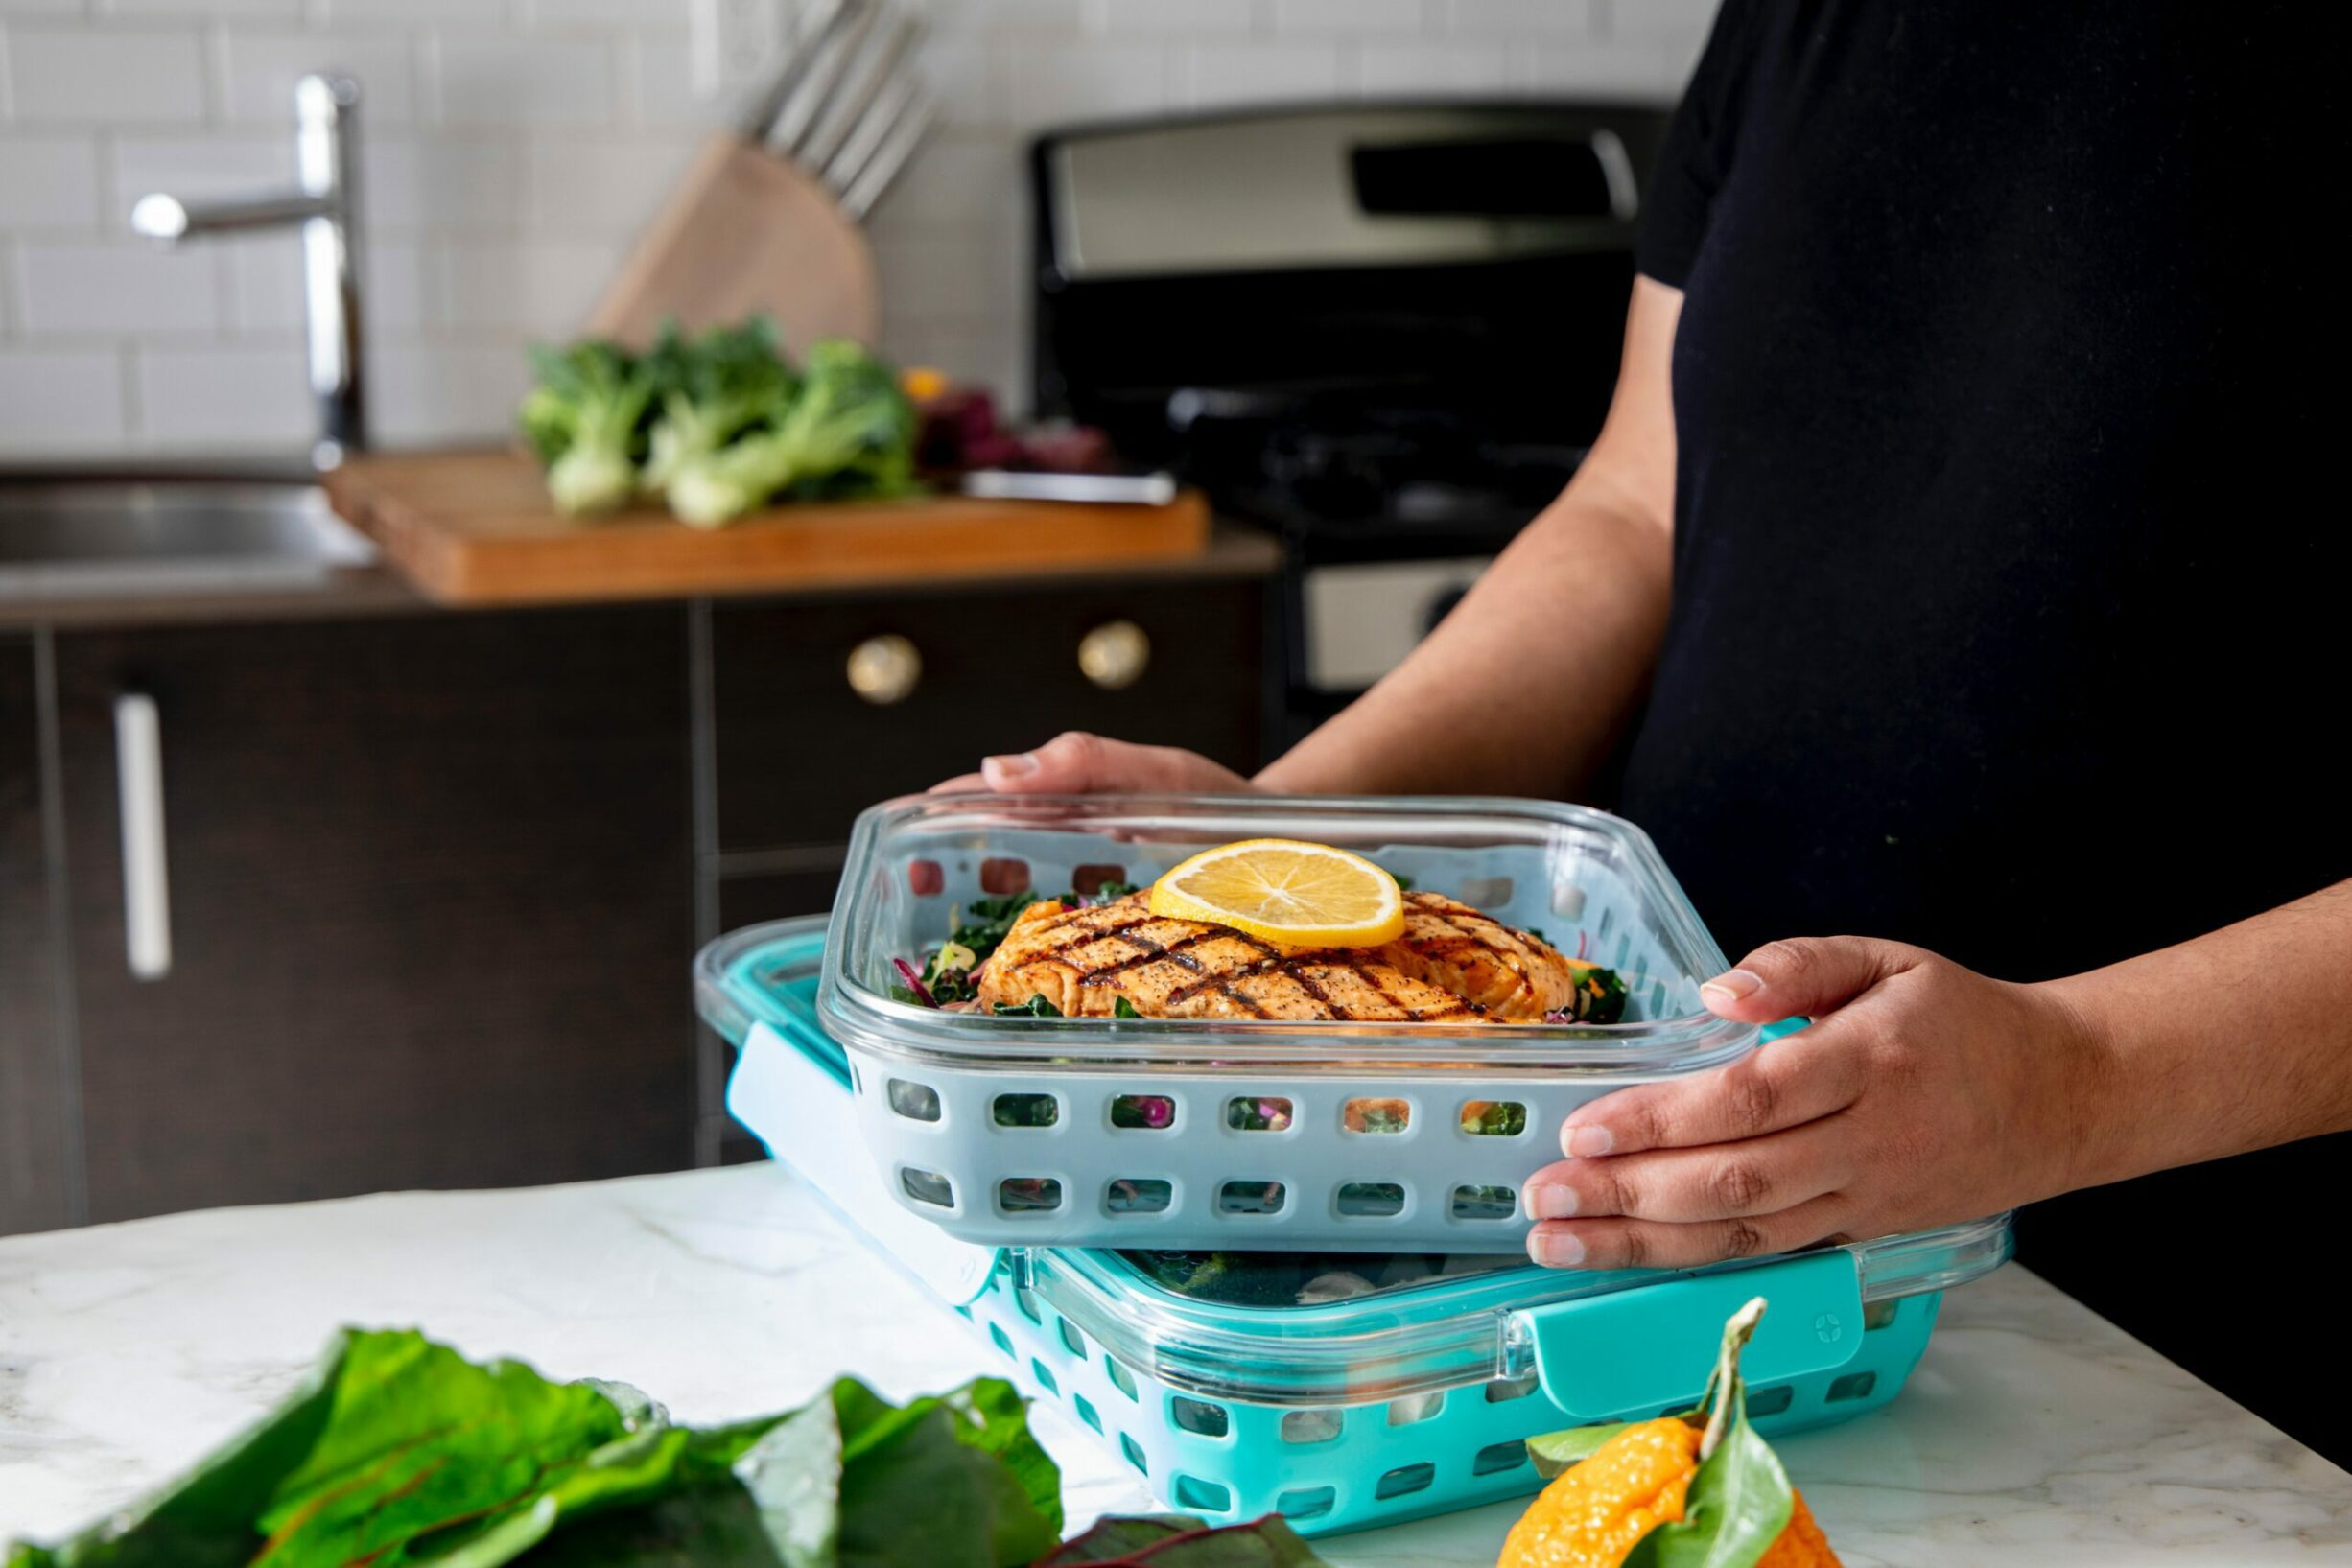 The 6 Best Reusable Food Containers for a Sustainable Home Kitchen